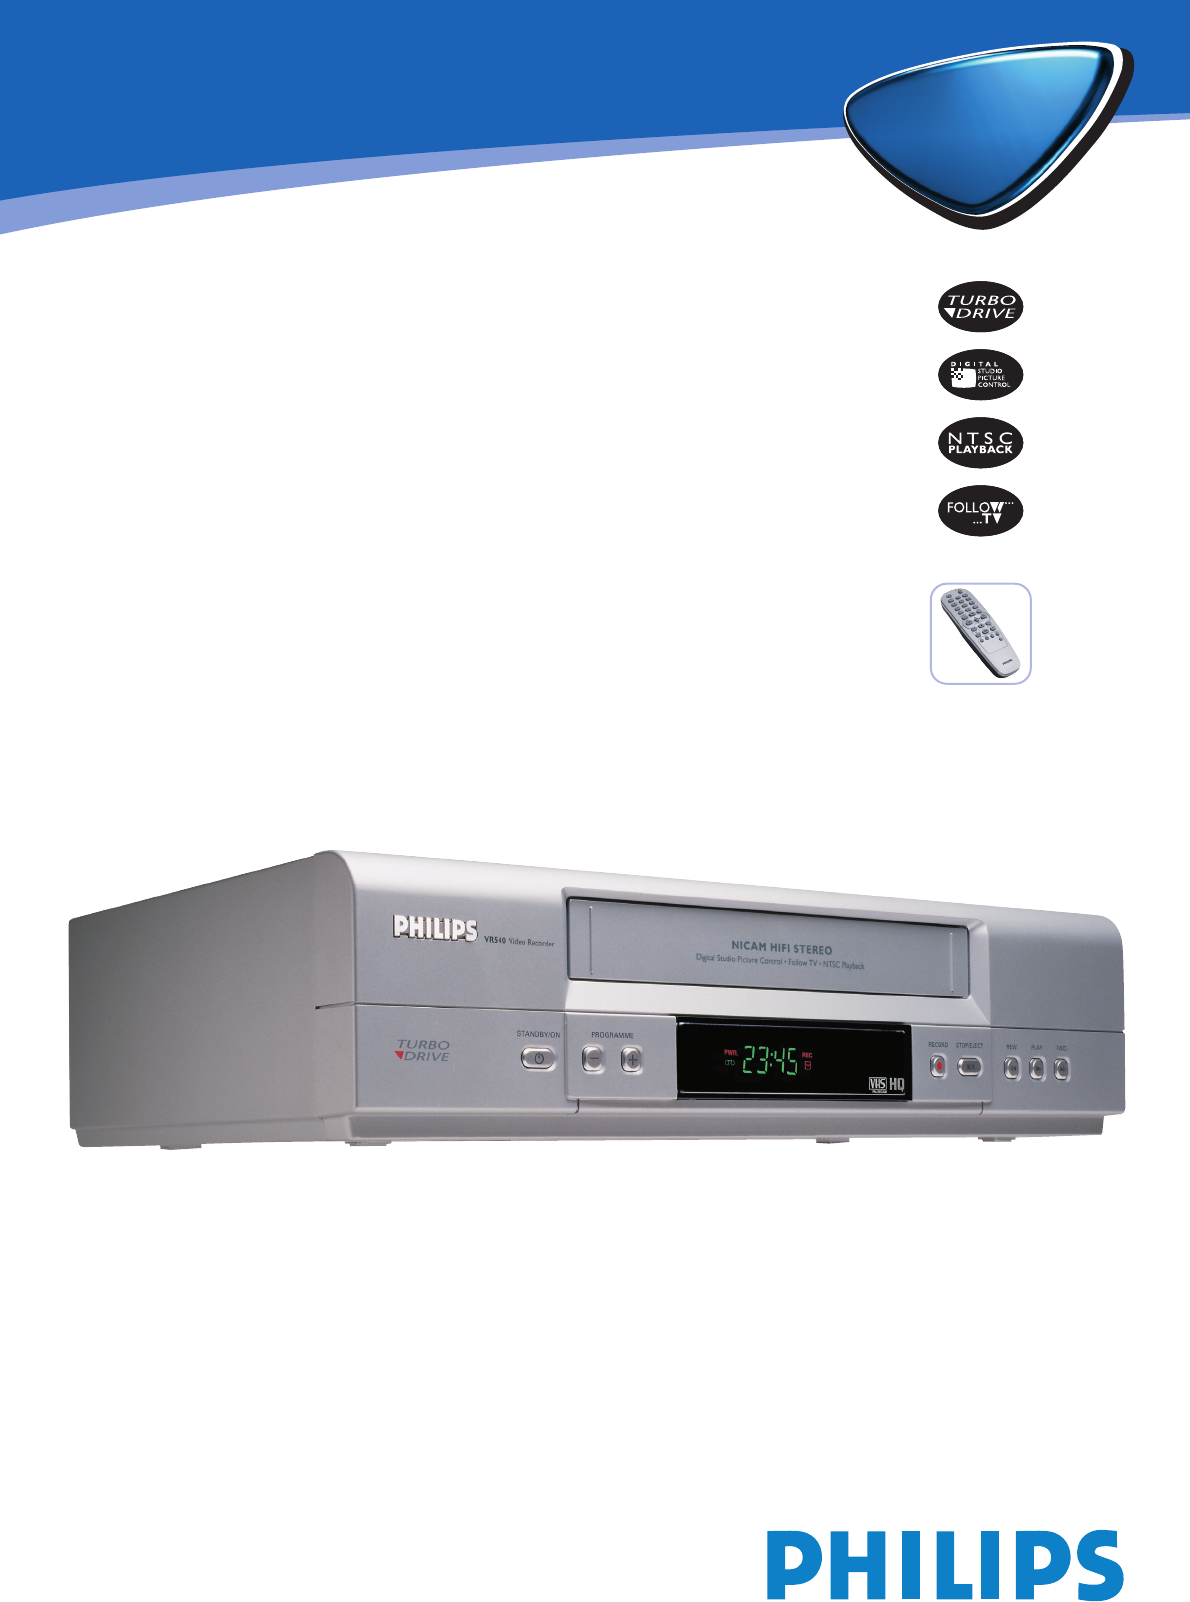 philips dvr vr 540 user guide manualsonline com rh tv manualsonline com Philips Universal Remote SRP2003 27 Manual Philips Product Manuals